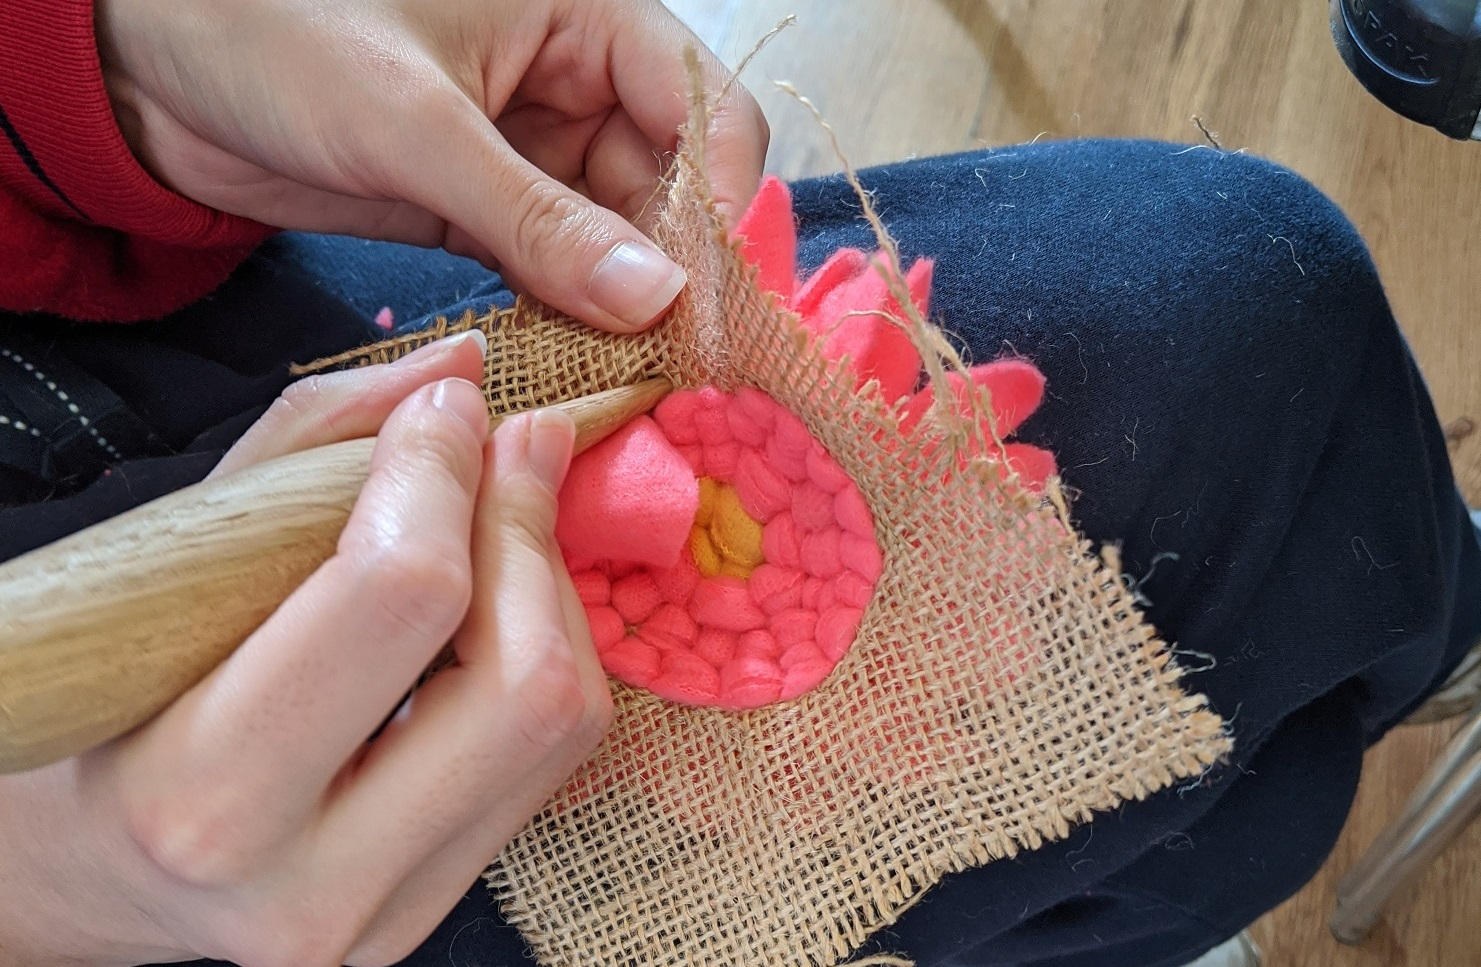 A woman's hands work on a bright pink craft flower